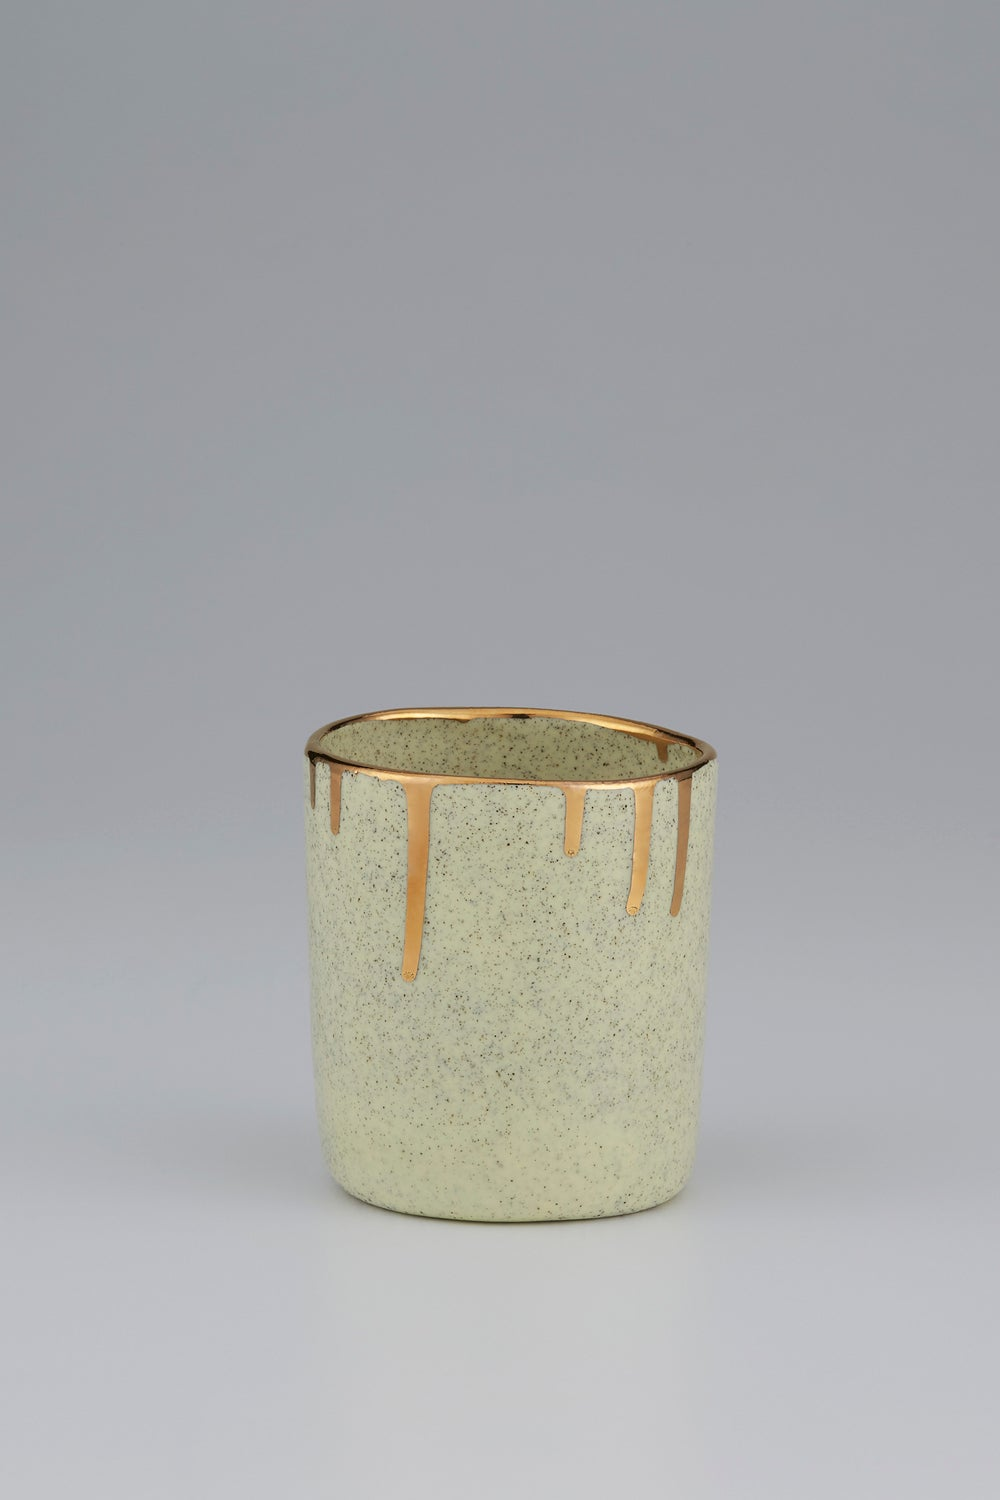 Claybird Tinted Tumbler with Gold Drip Rim Speckled Yellow